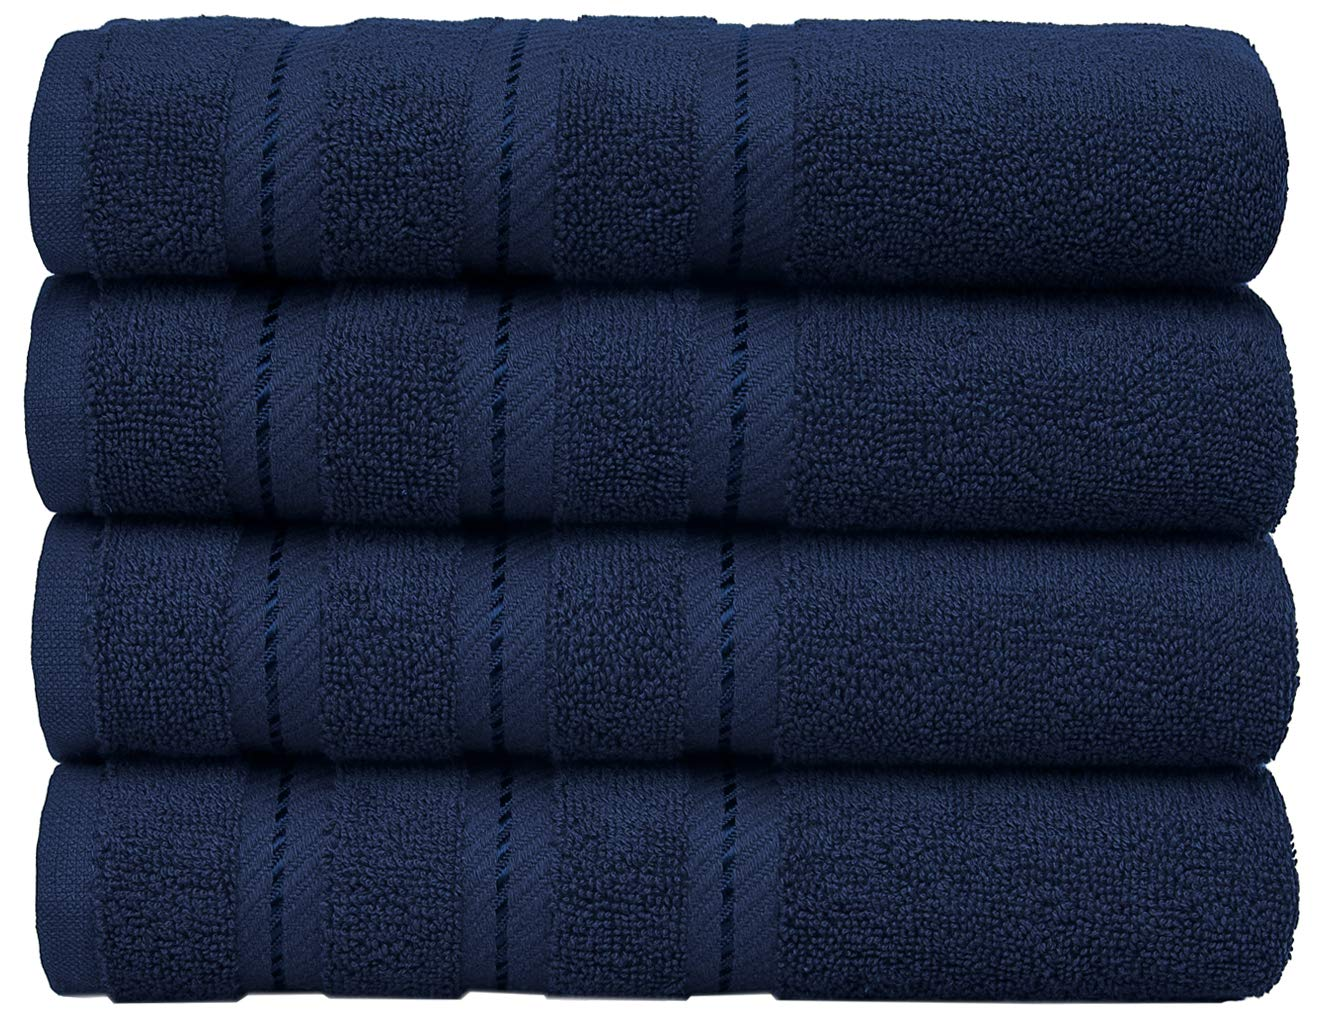 Luxury Hotel and Spa Quality, 100% Ring Spun Genuine Cotton, 16x30 Inches 4-Piece Turkish Hand Towel Set for Maximum Softness and Absorbency, Dry Quickly by American Soft Linen, Navy Blue